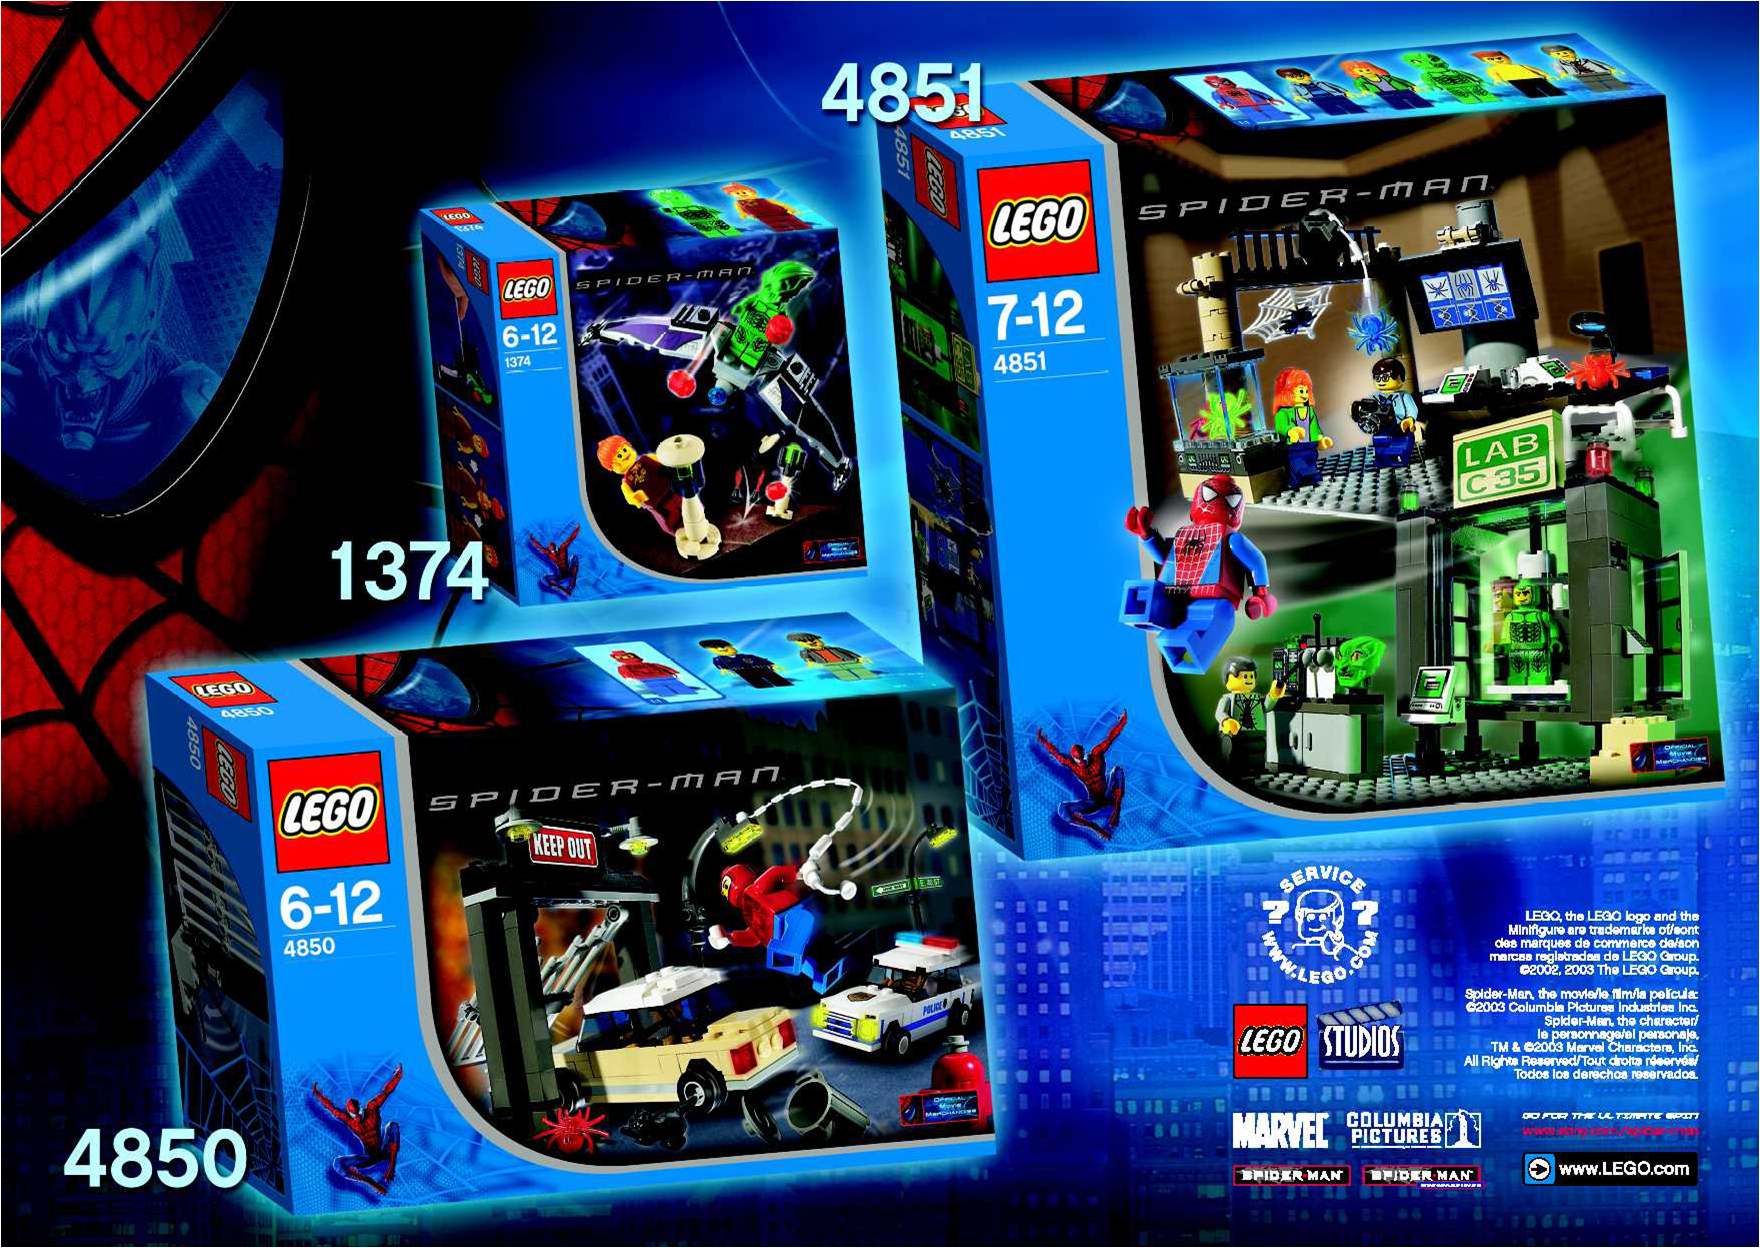 Spider man theme lego marvel and dc superheroes wiki fandom powered by wikia - Lego spiderman 2 ...